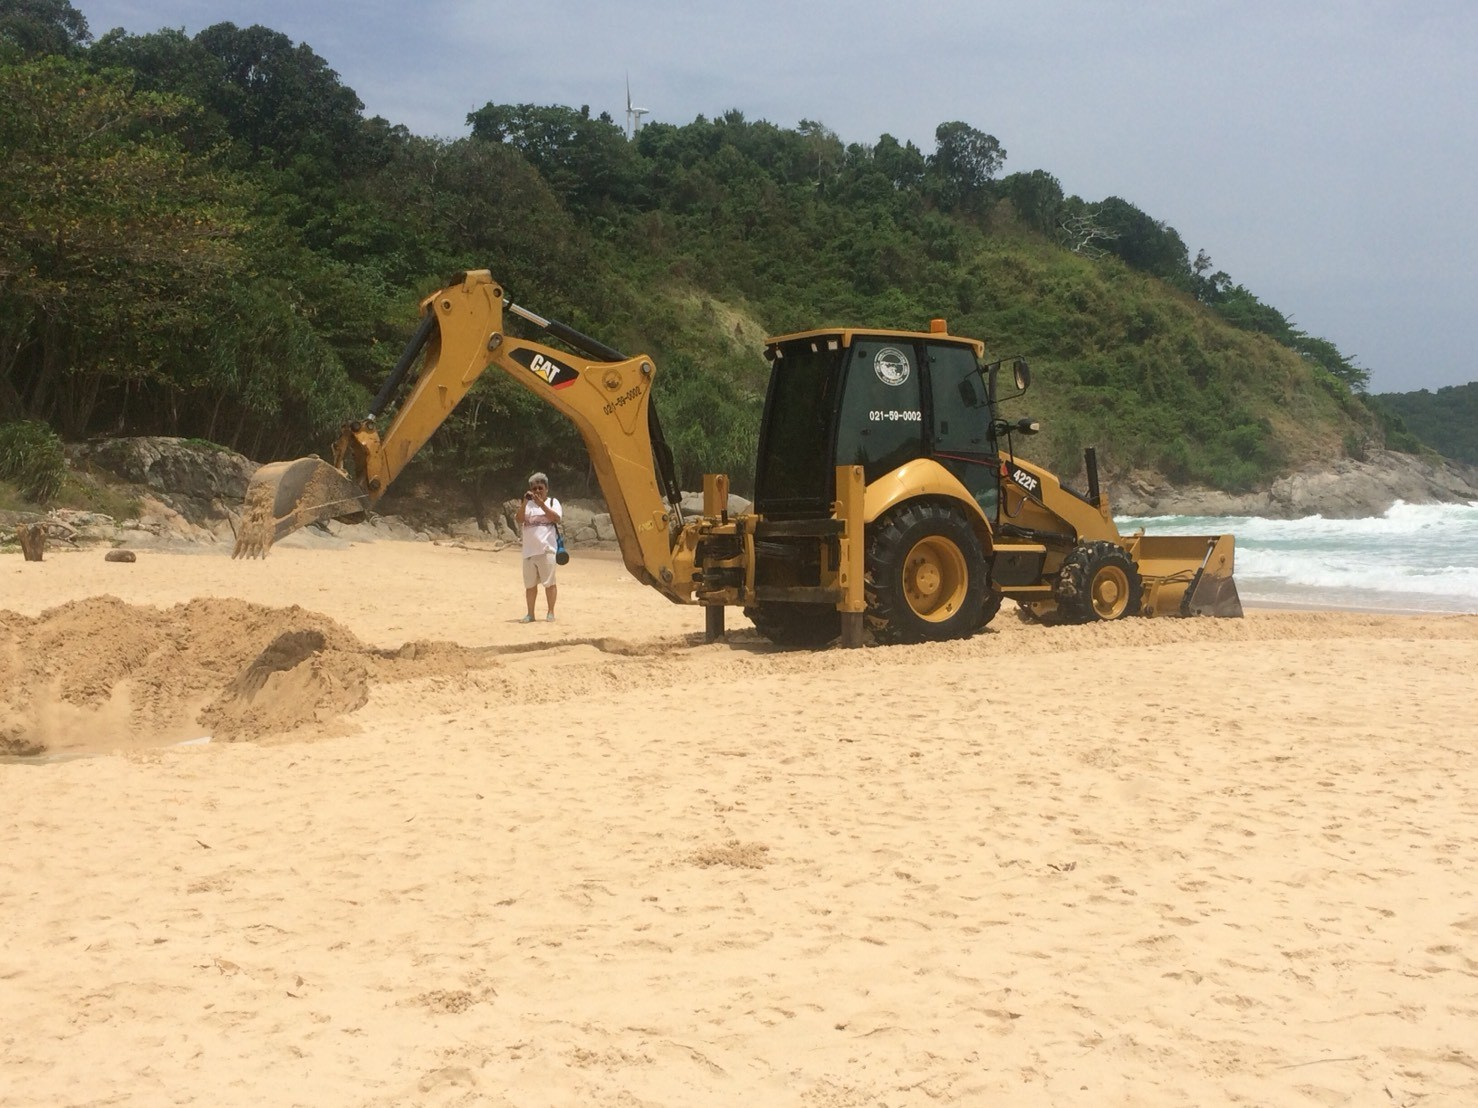 Channel dredged between Nai Harn beach and lake to help with croc catching | The Thaiger